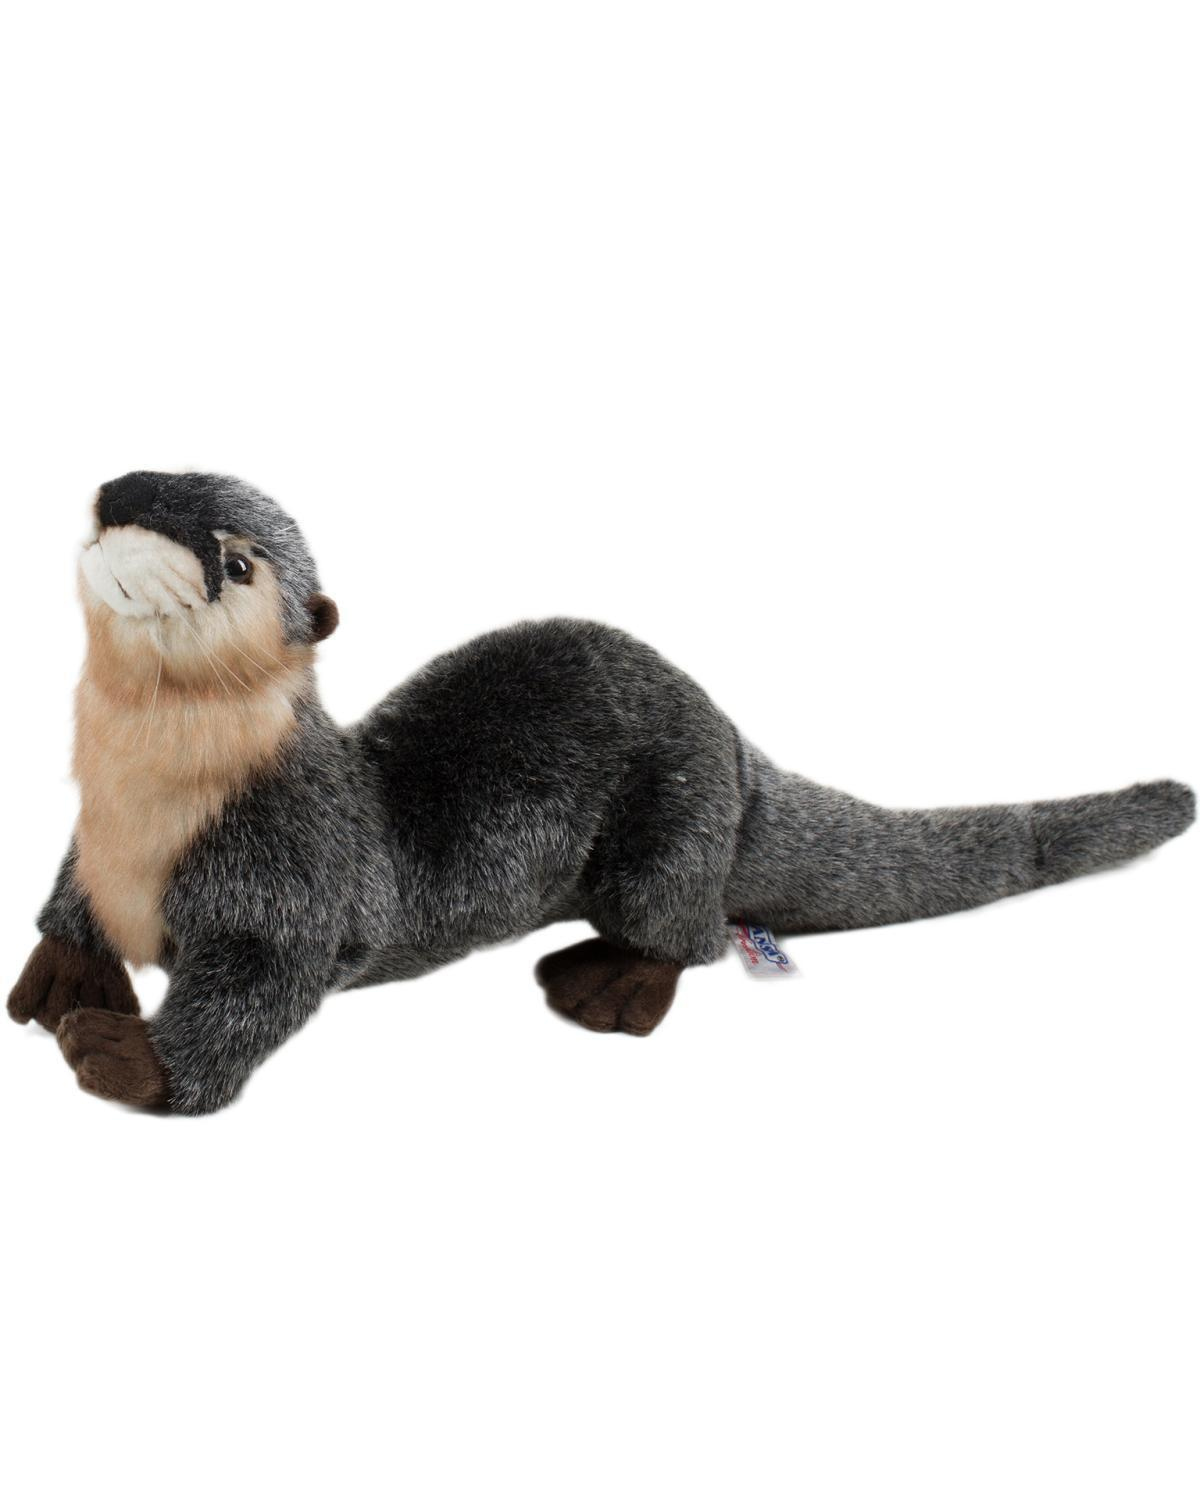 Little hansa toys play River Otter